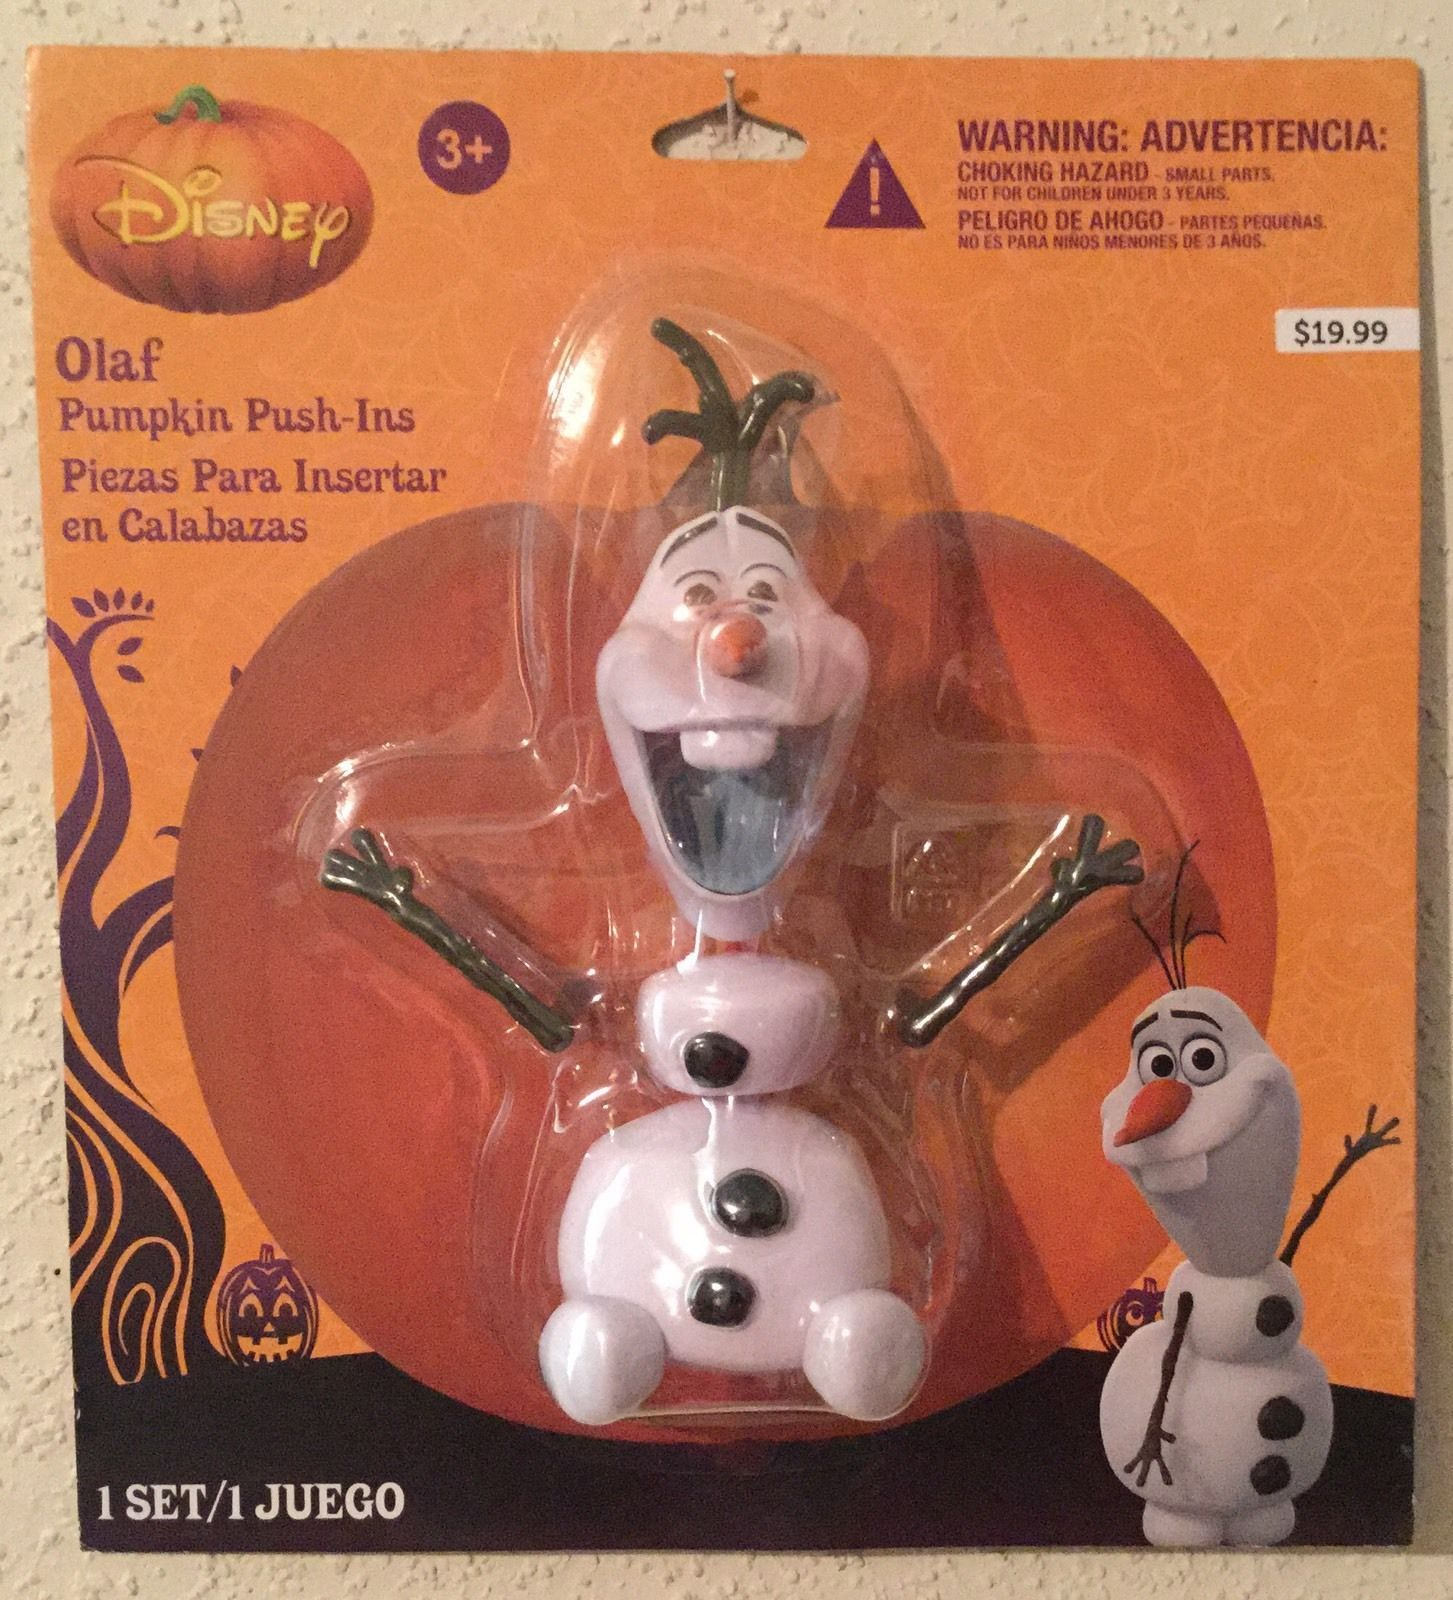 Disney's Frozen OLAF Pumpkin Push-Ins - 5 Plastic Pieces - Safe Halloween Decor